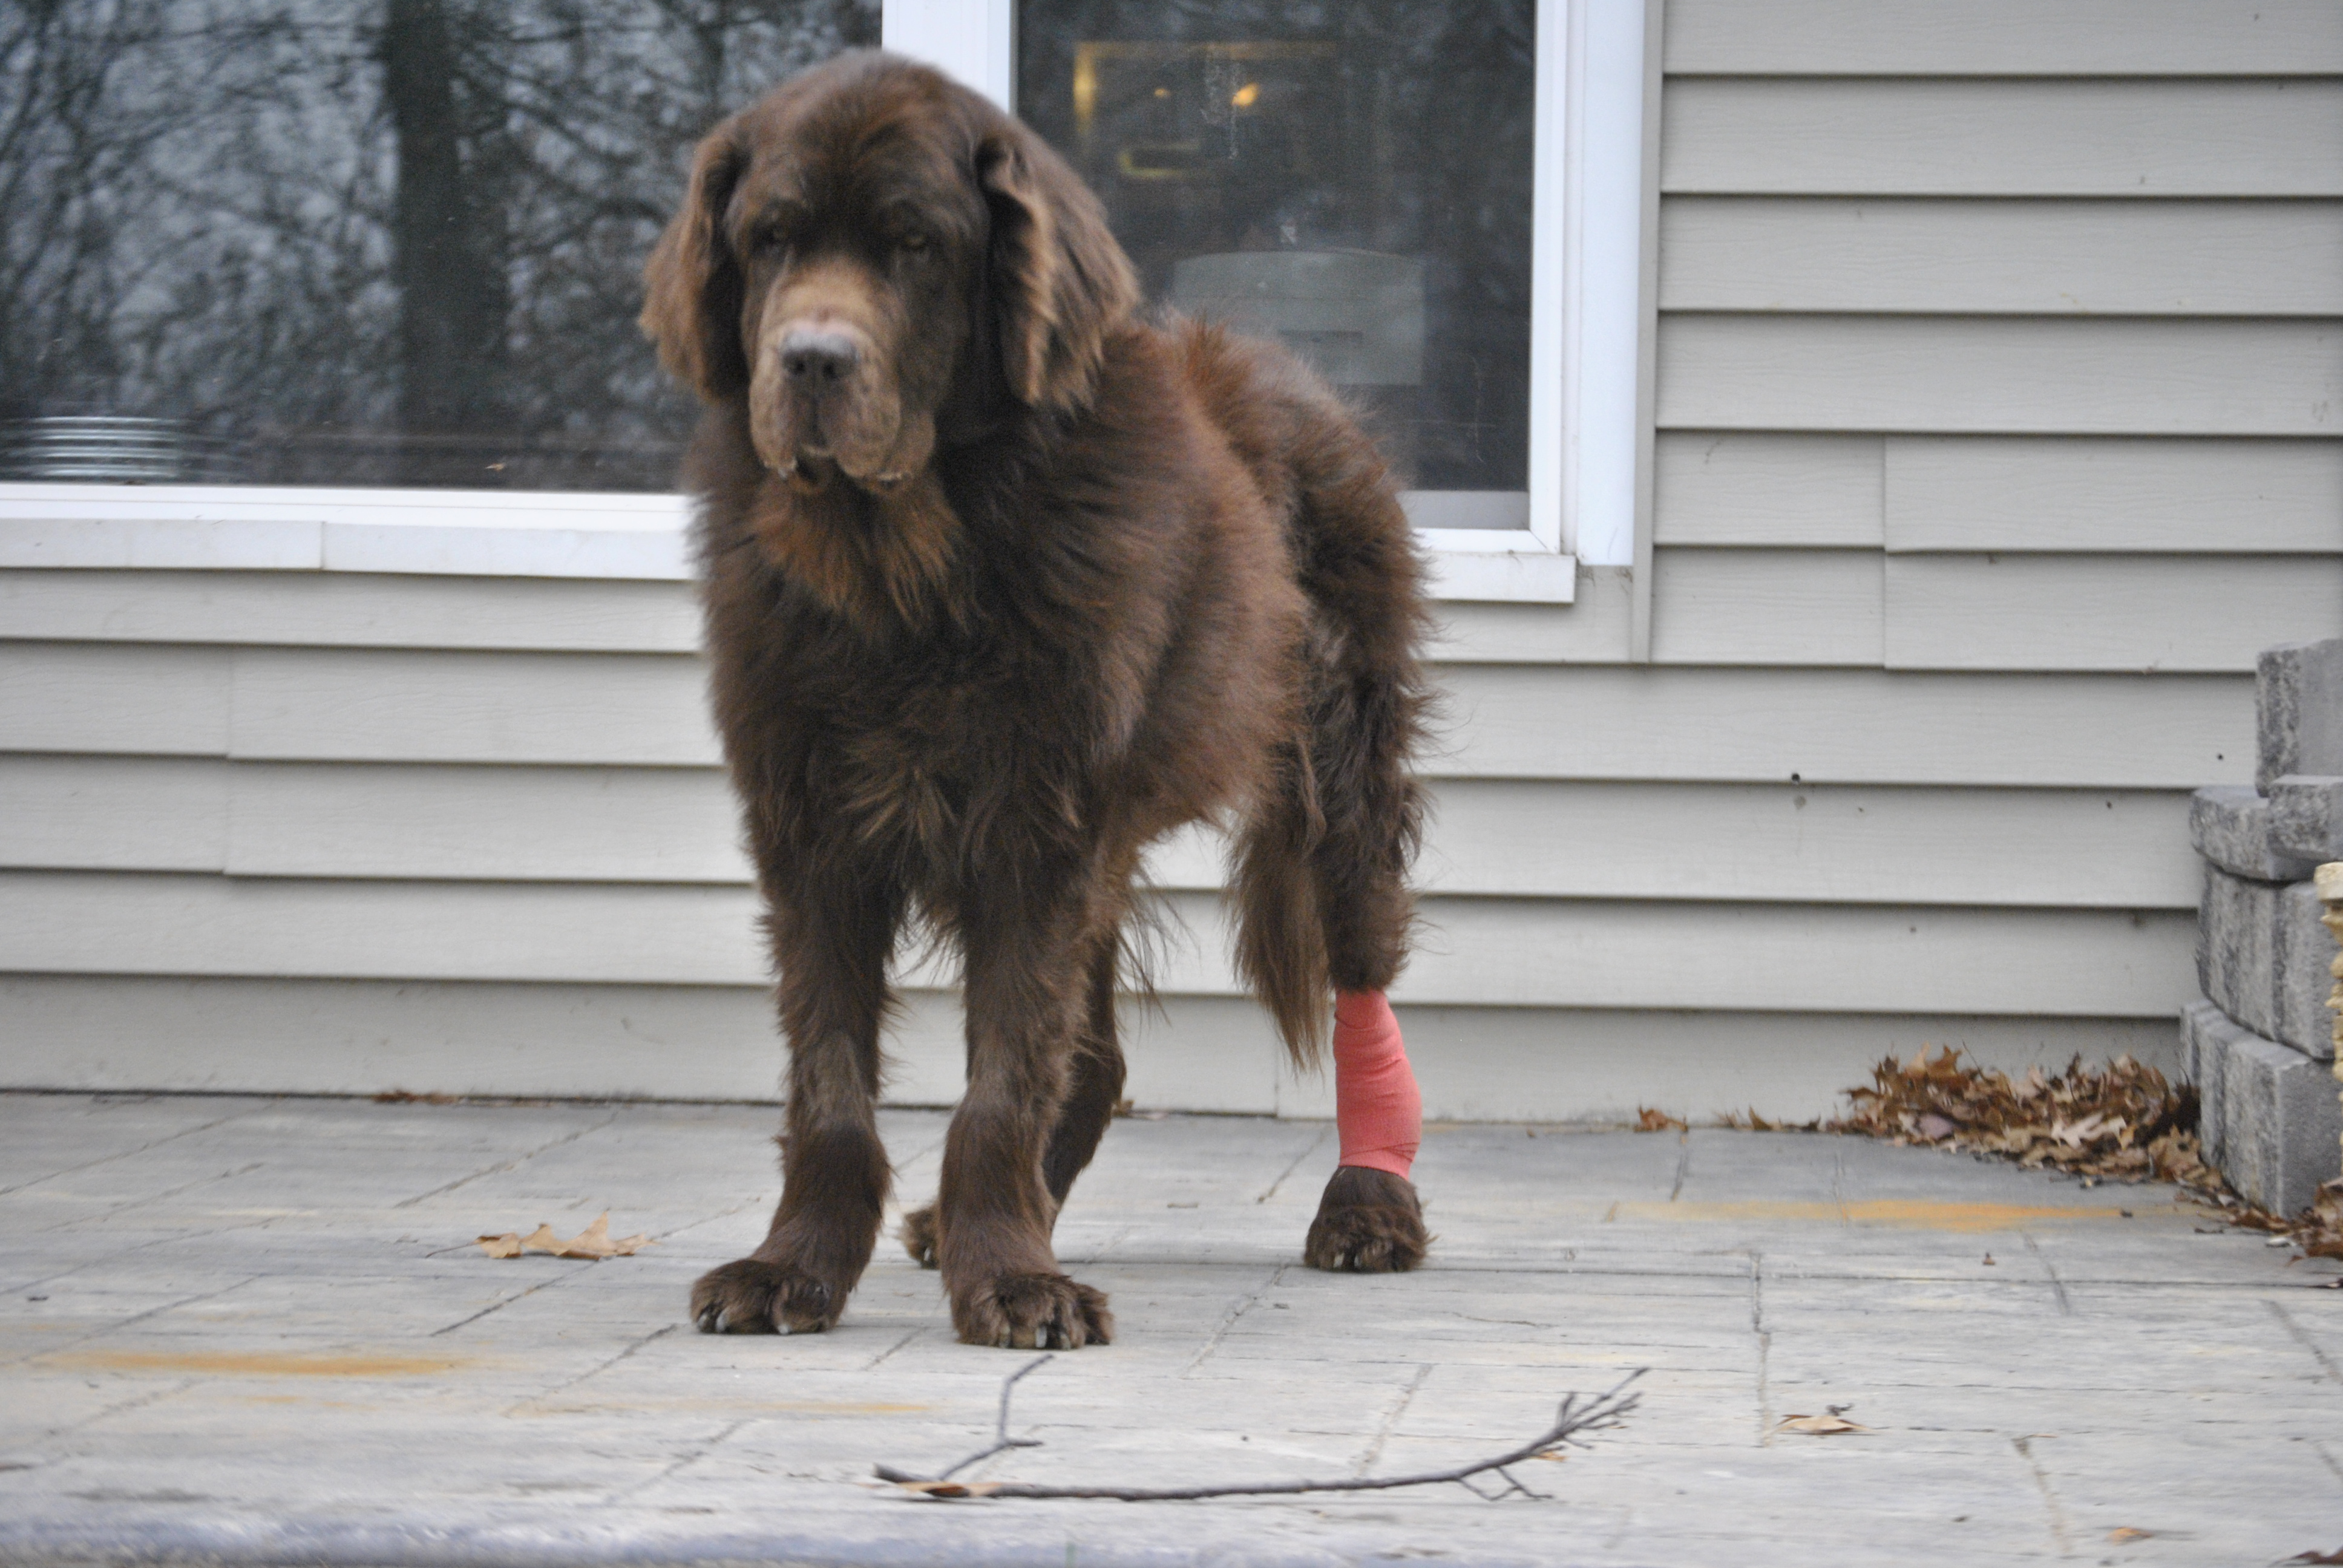 Stages Of Pressure Sores And Wound Healing In Dogs - My